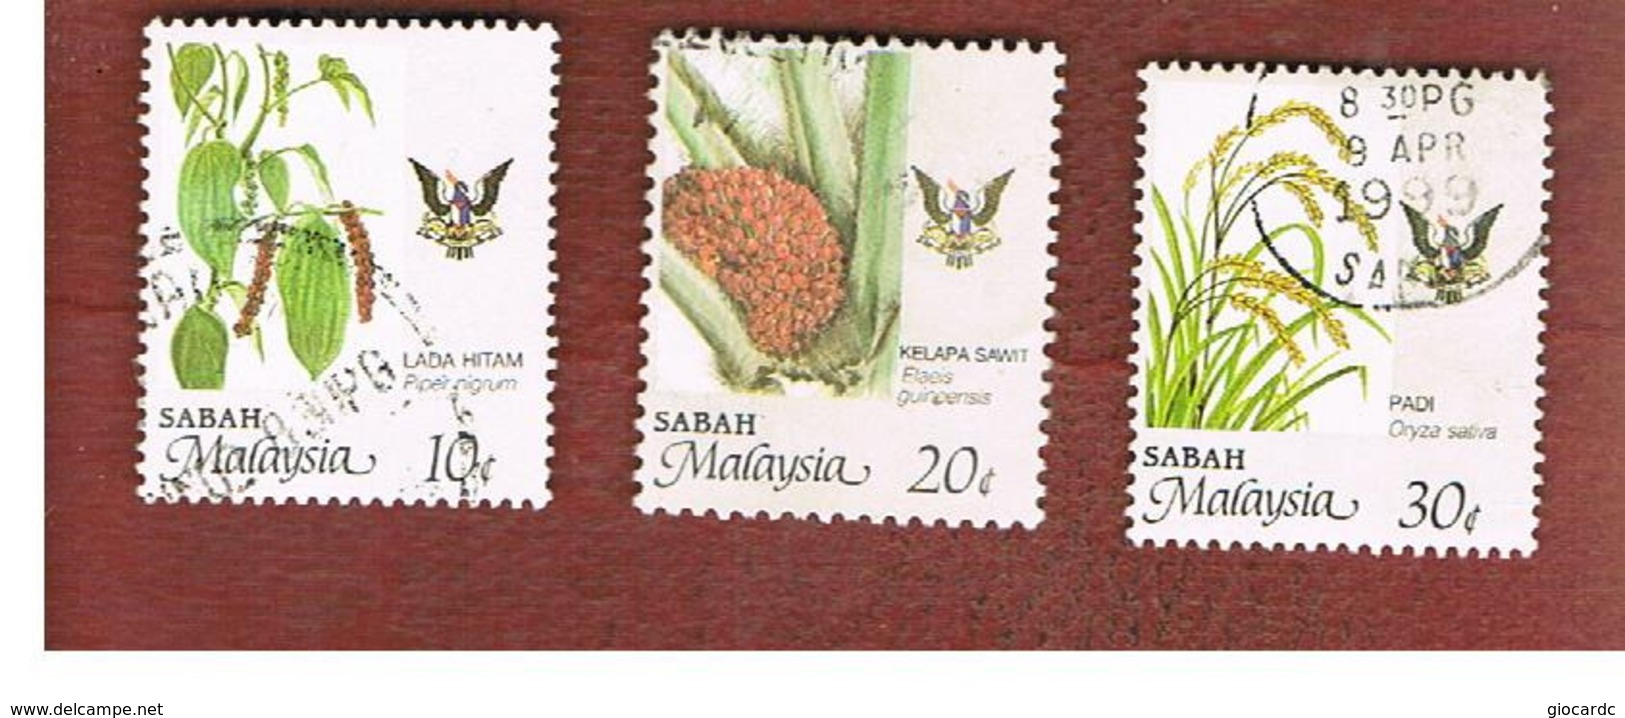 MALESIA: SABAH (MALAYSIA) -  SG 462.465  -  1986  AGRICULTURAL PRODUCTS  - USED ° - Malesia (1964-...)